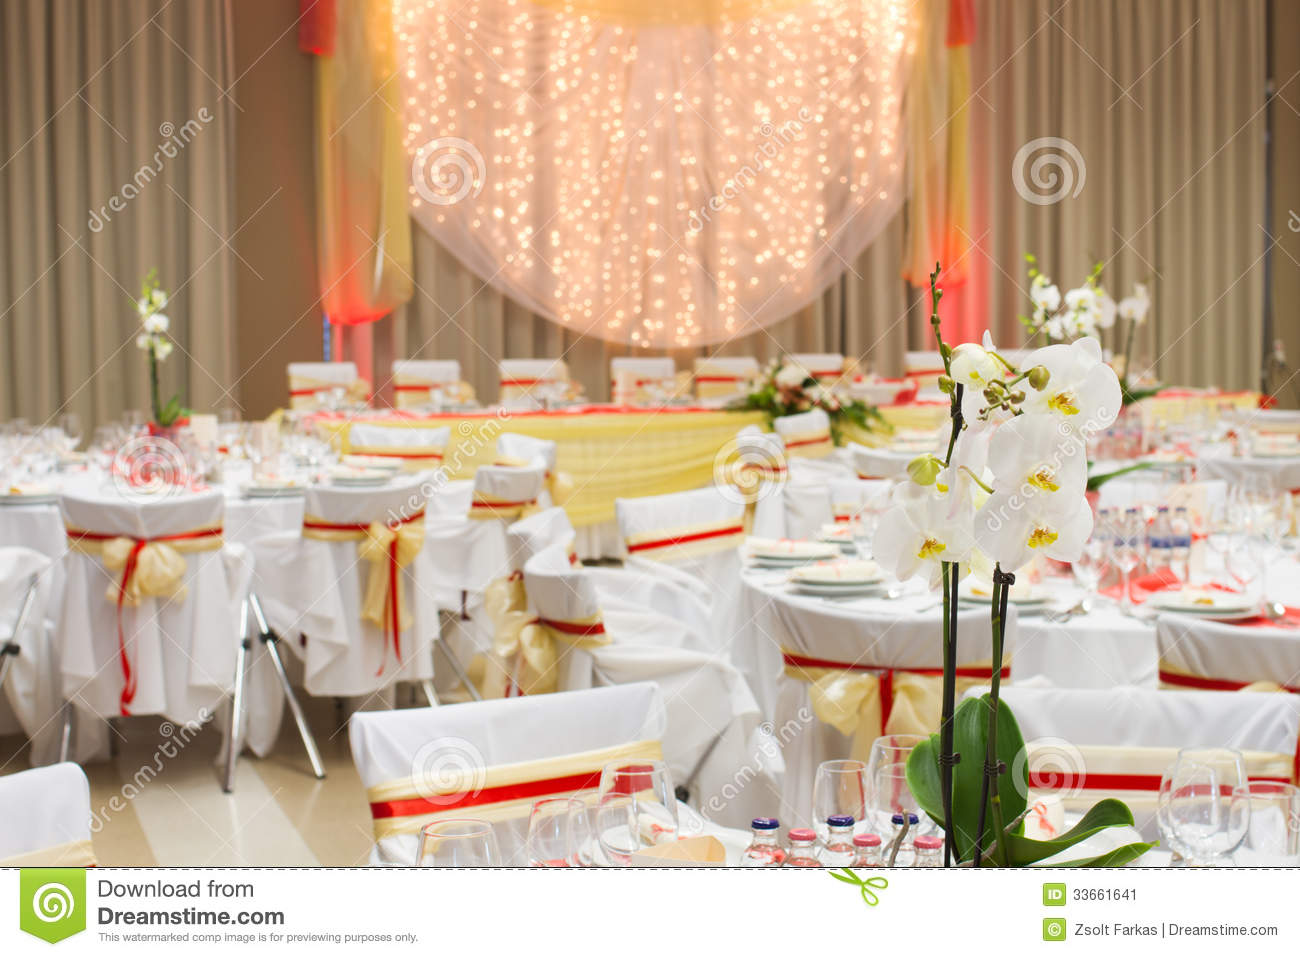 White Chairs At A Wedding Indoor Stock Photo: An Image Of Table Setting At A Luxury Wedding Reception